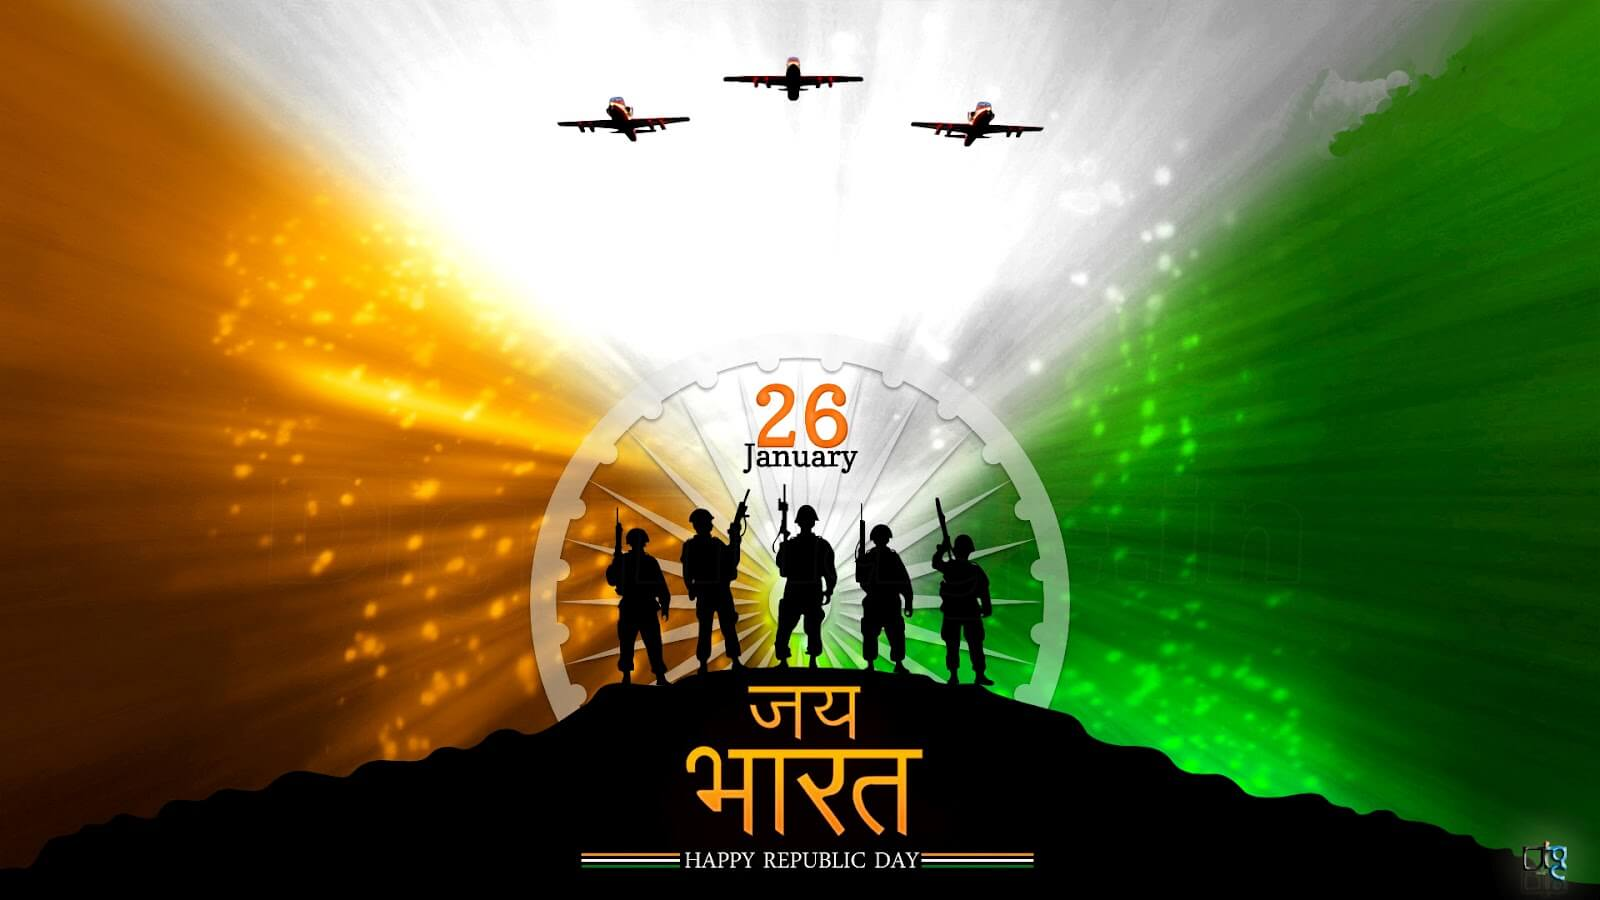 Live Streaming Republic Day Parade - 26th January 2017